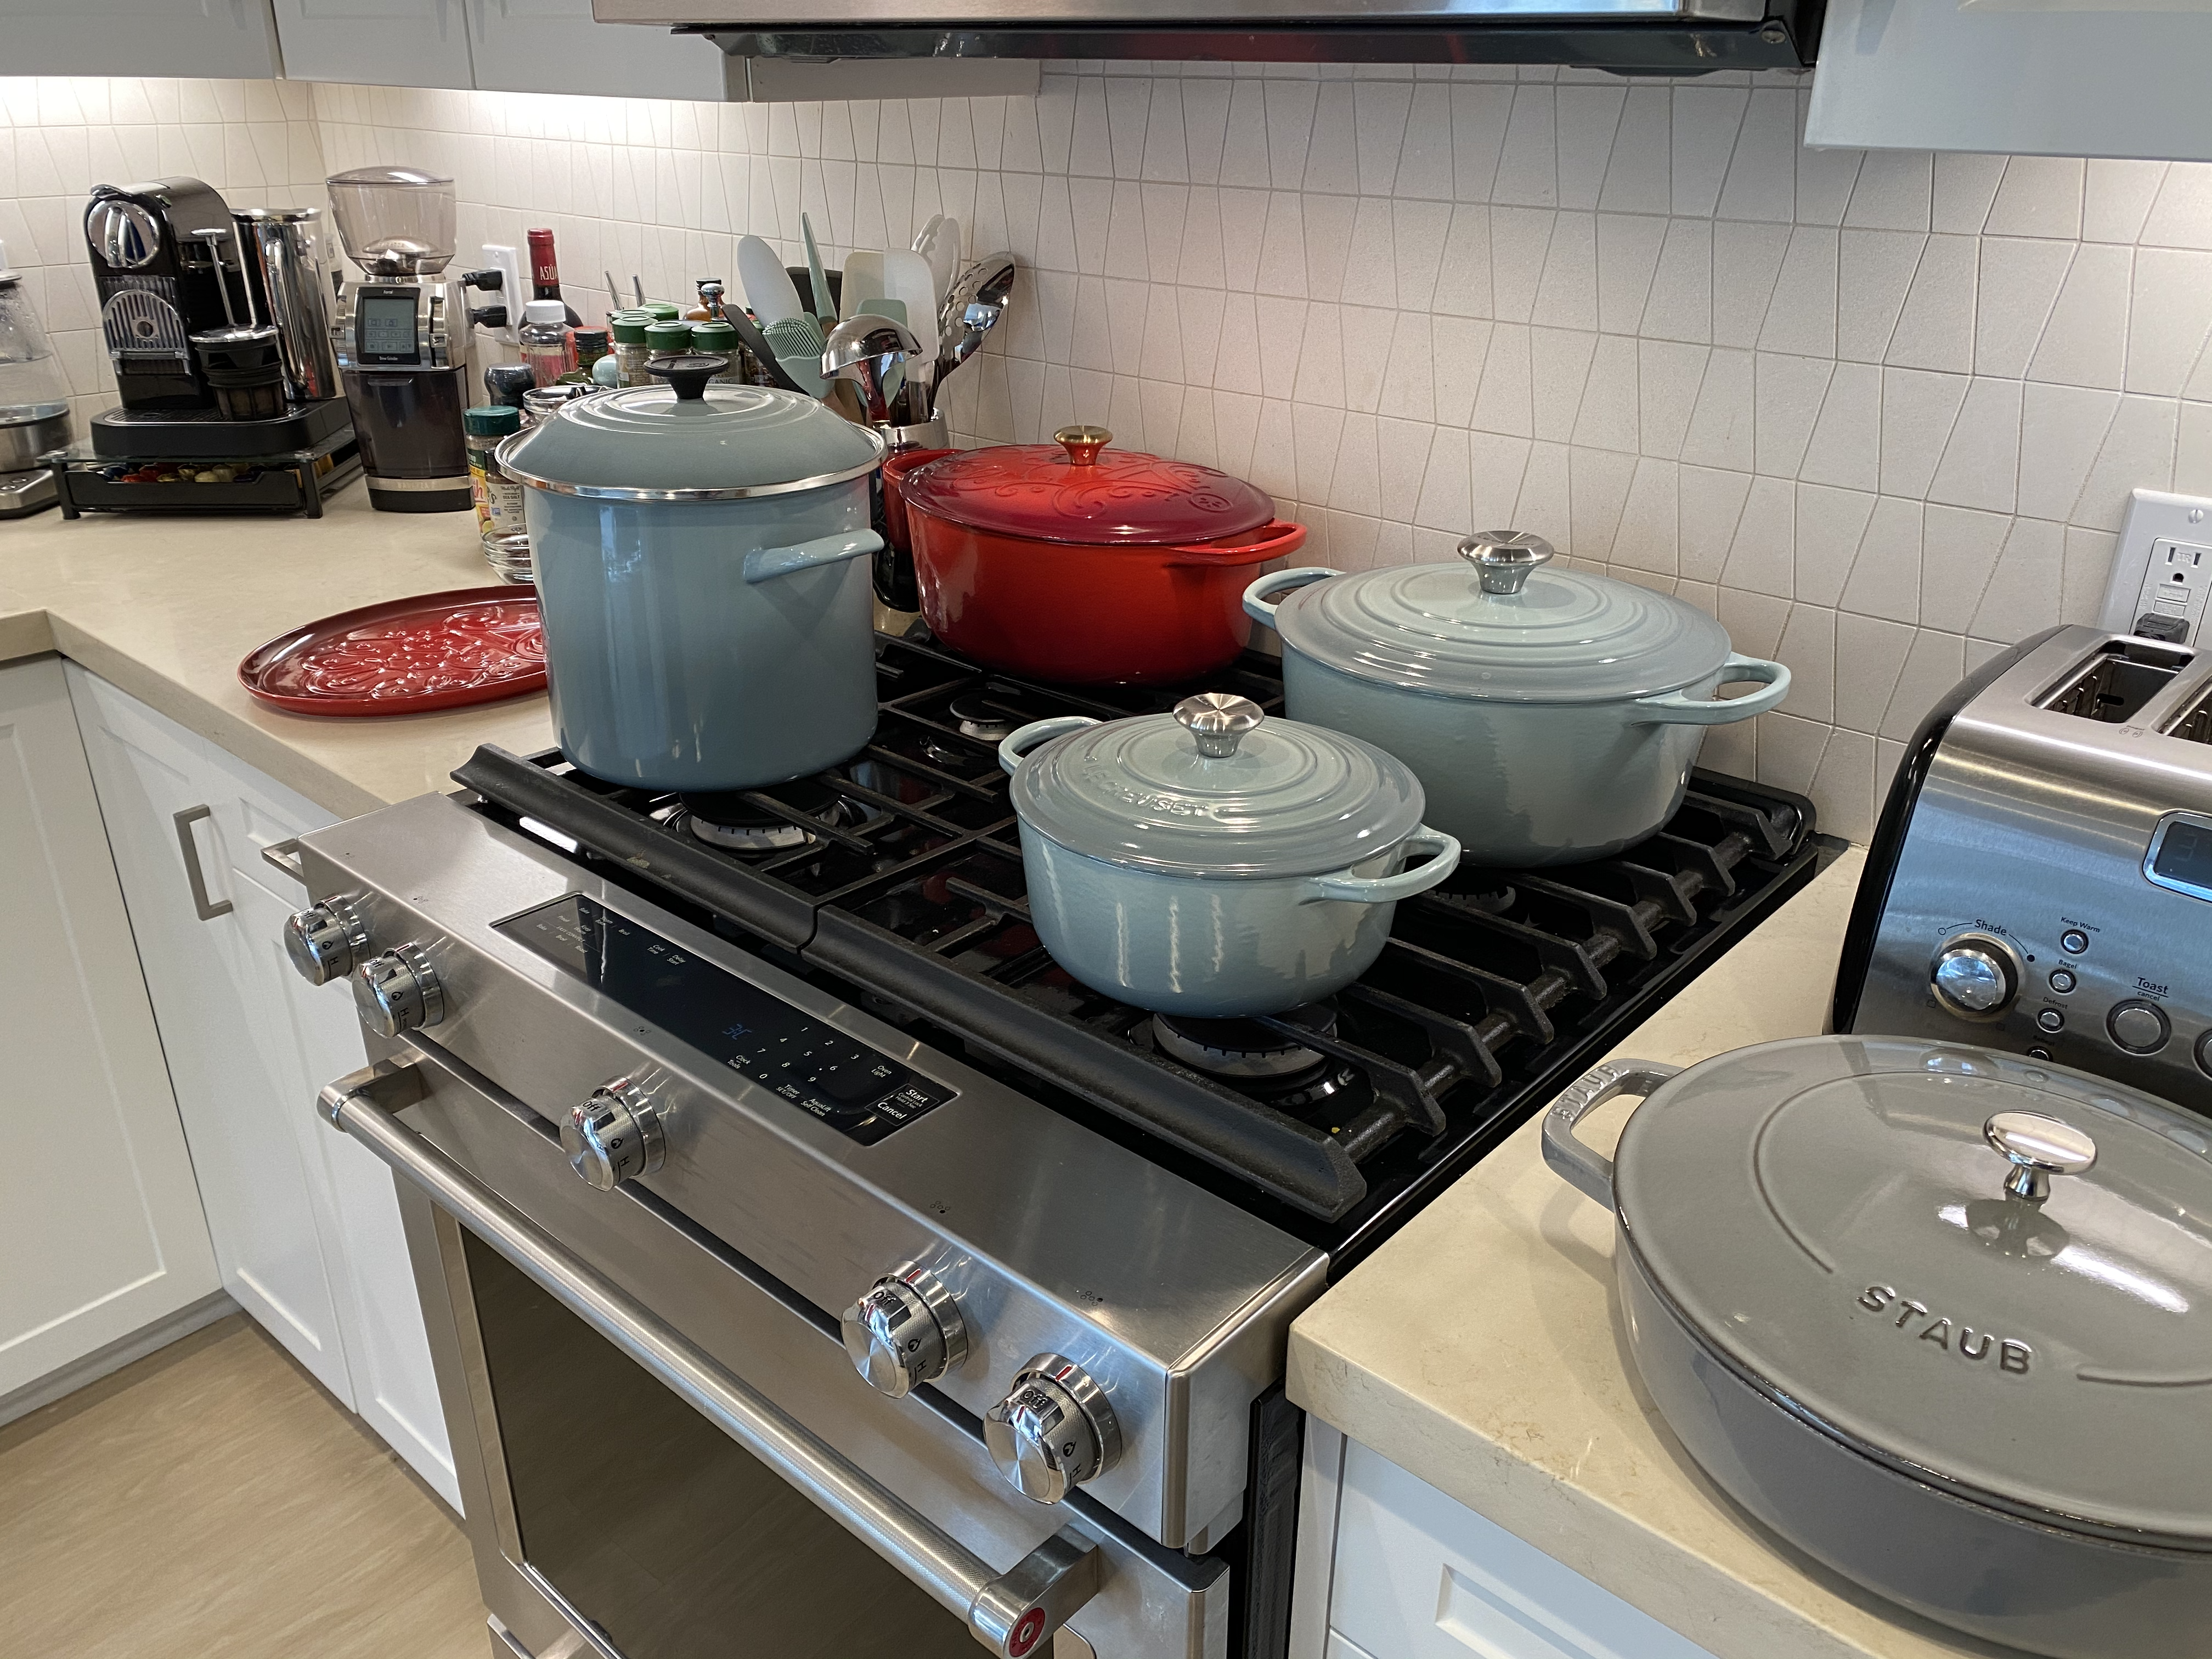 Le Creuset Inventory and Organization Project II